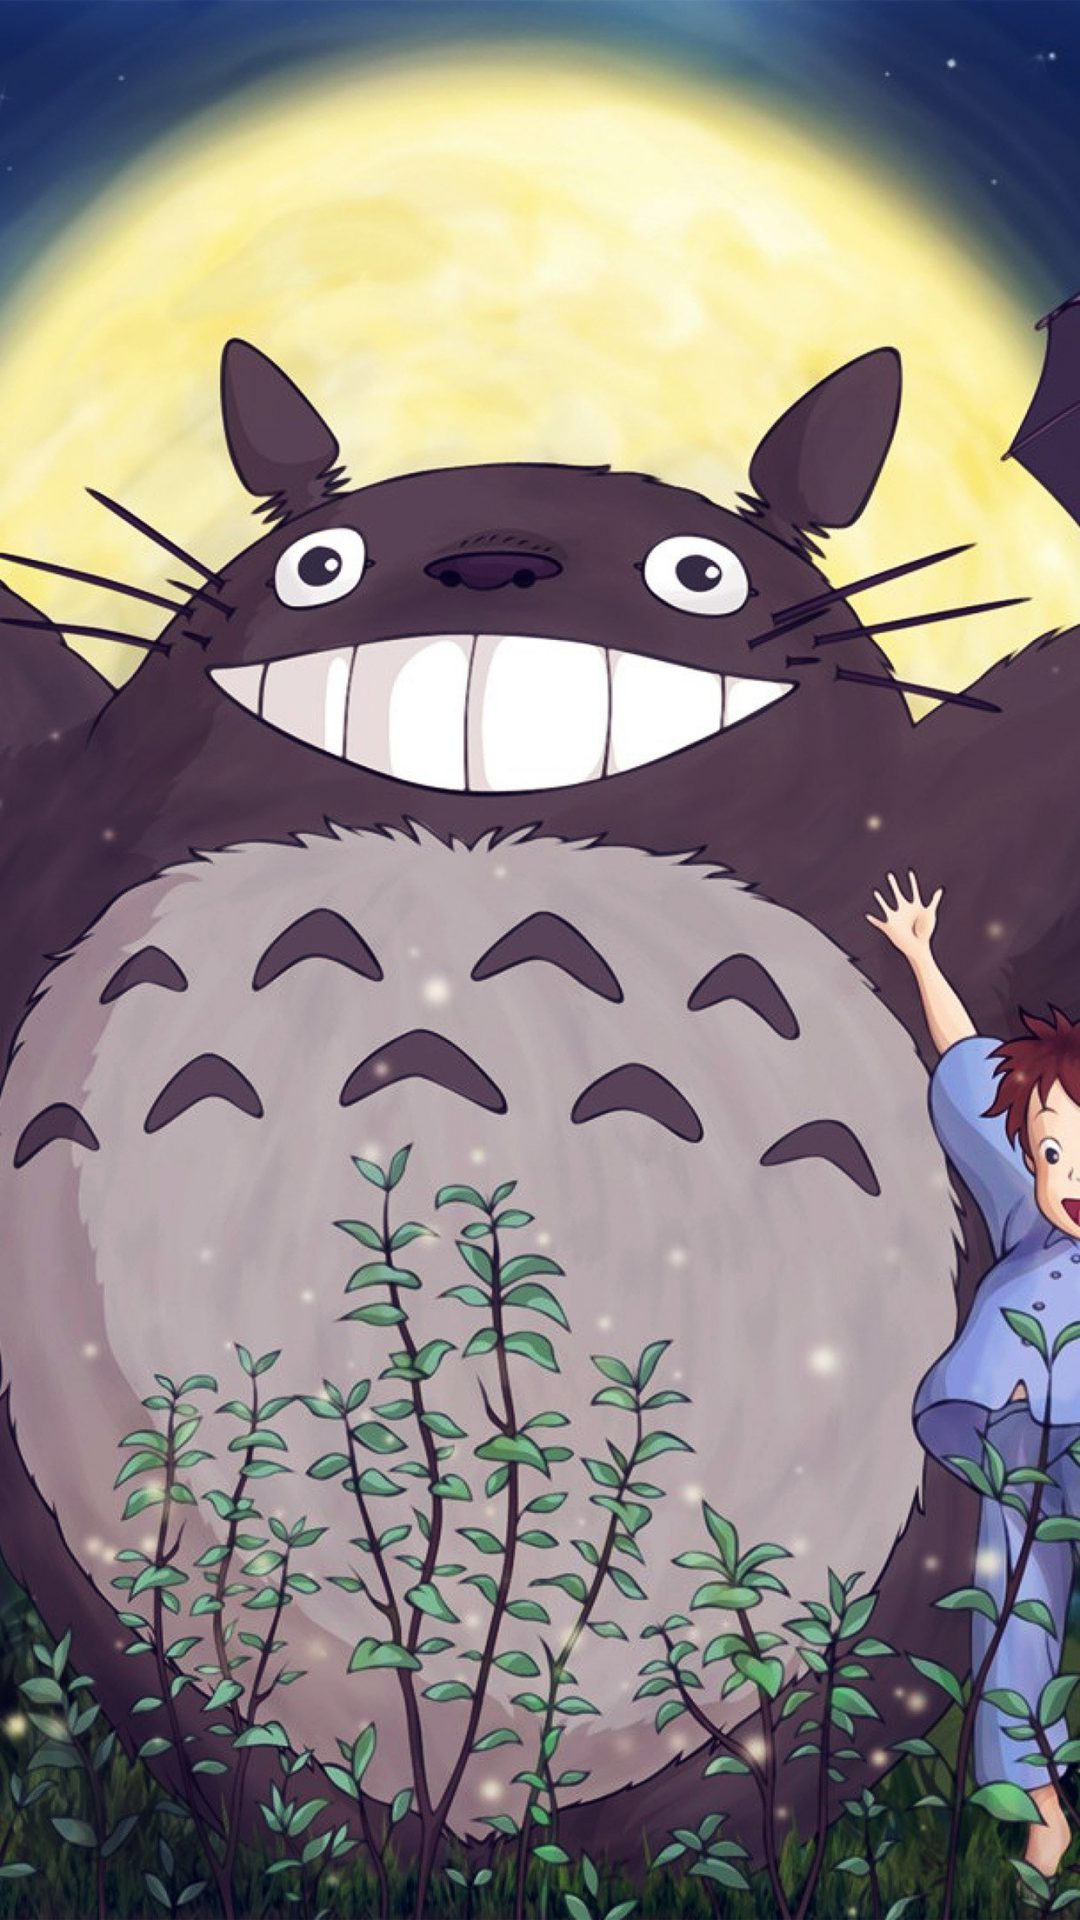 Totoro Forest Anime Cute Illustration Art Blue